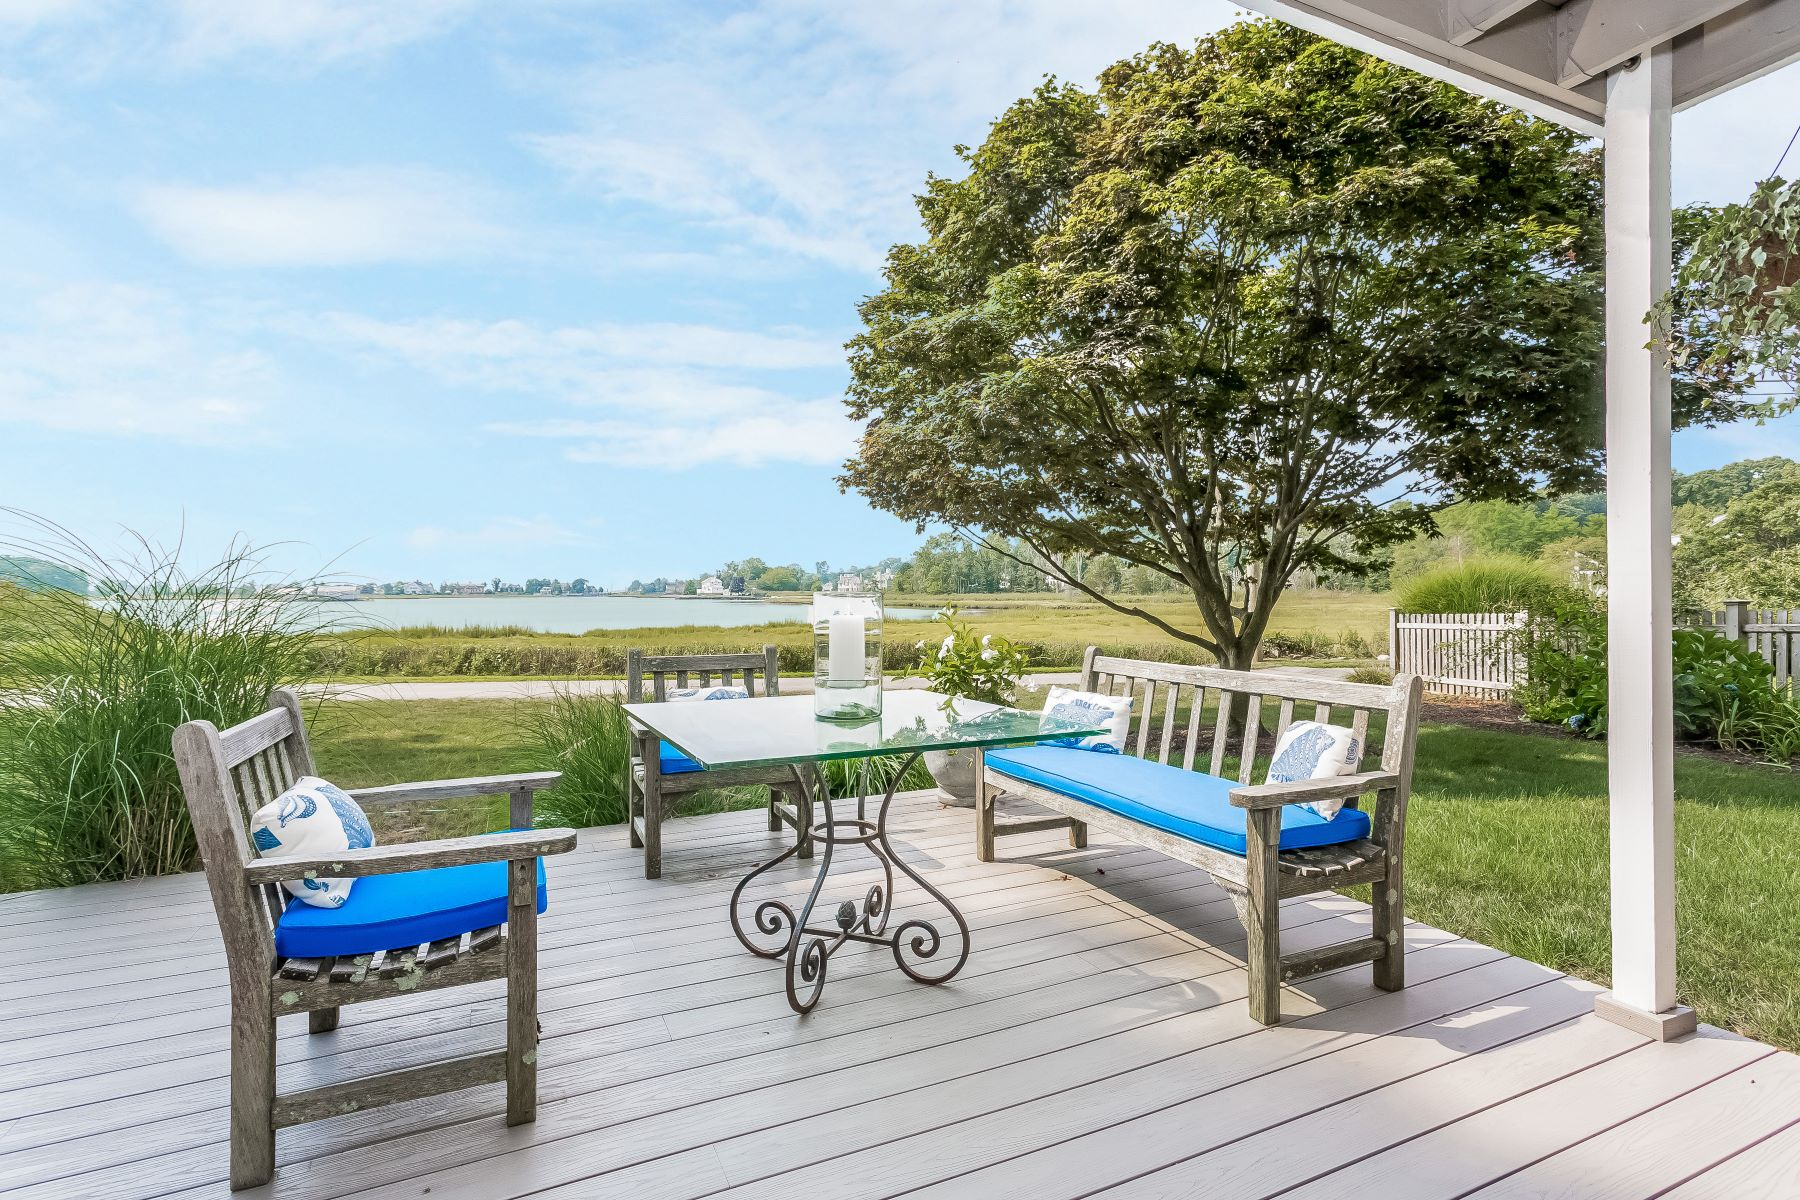 Casa Unifamiliar por un Venta en Panaromic Water Views 94 Grove Point Road Westport, Connecticut, 06880 Estados Unidos